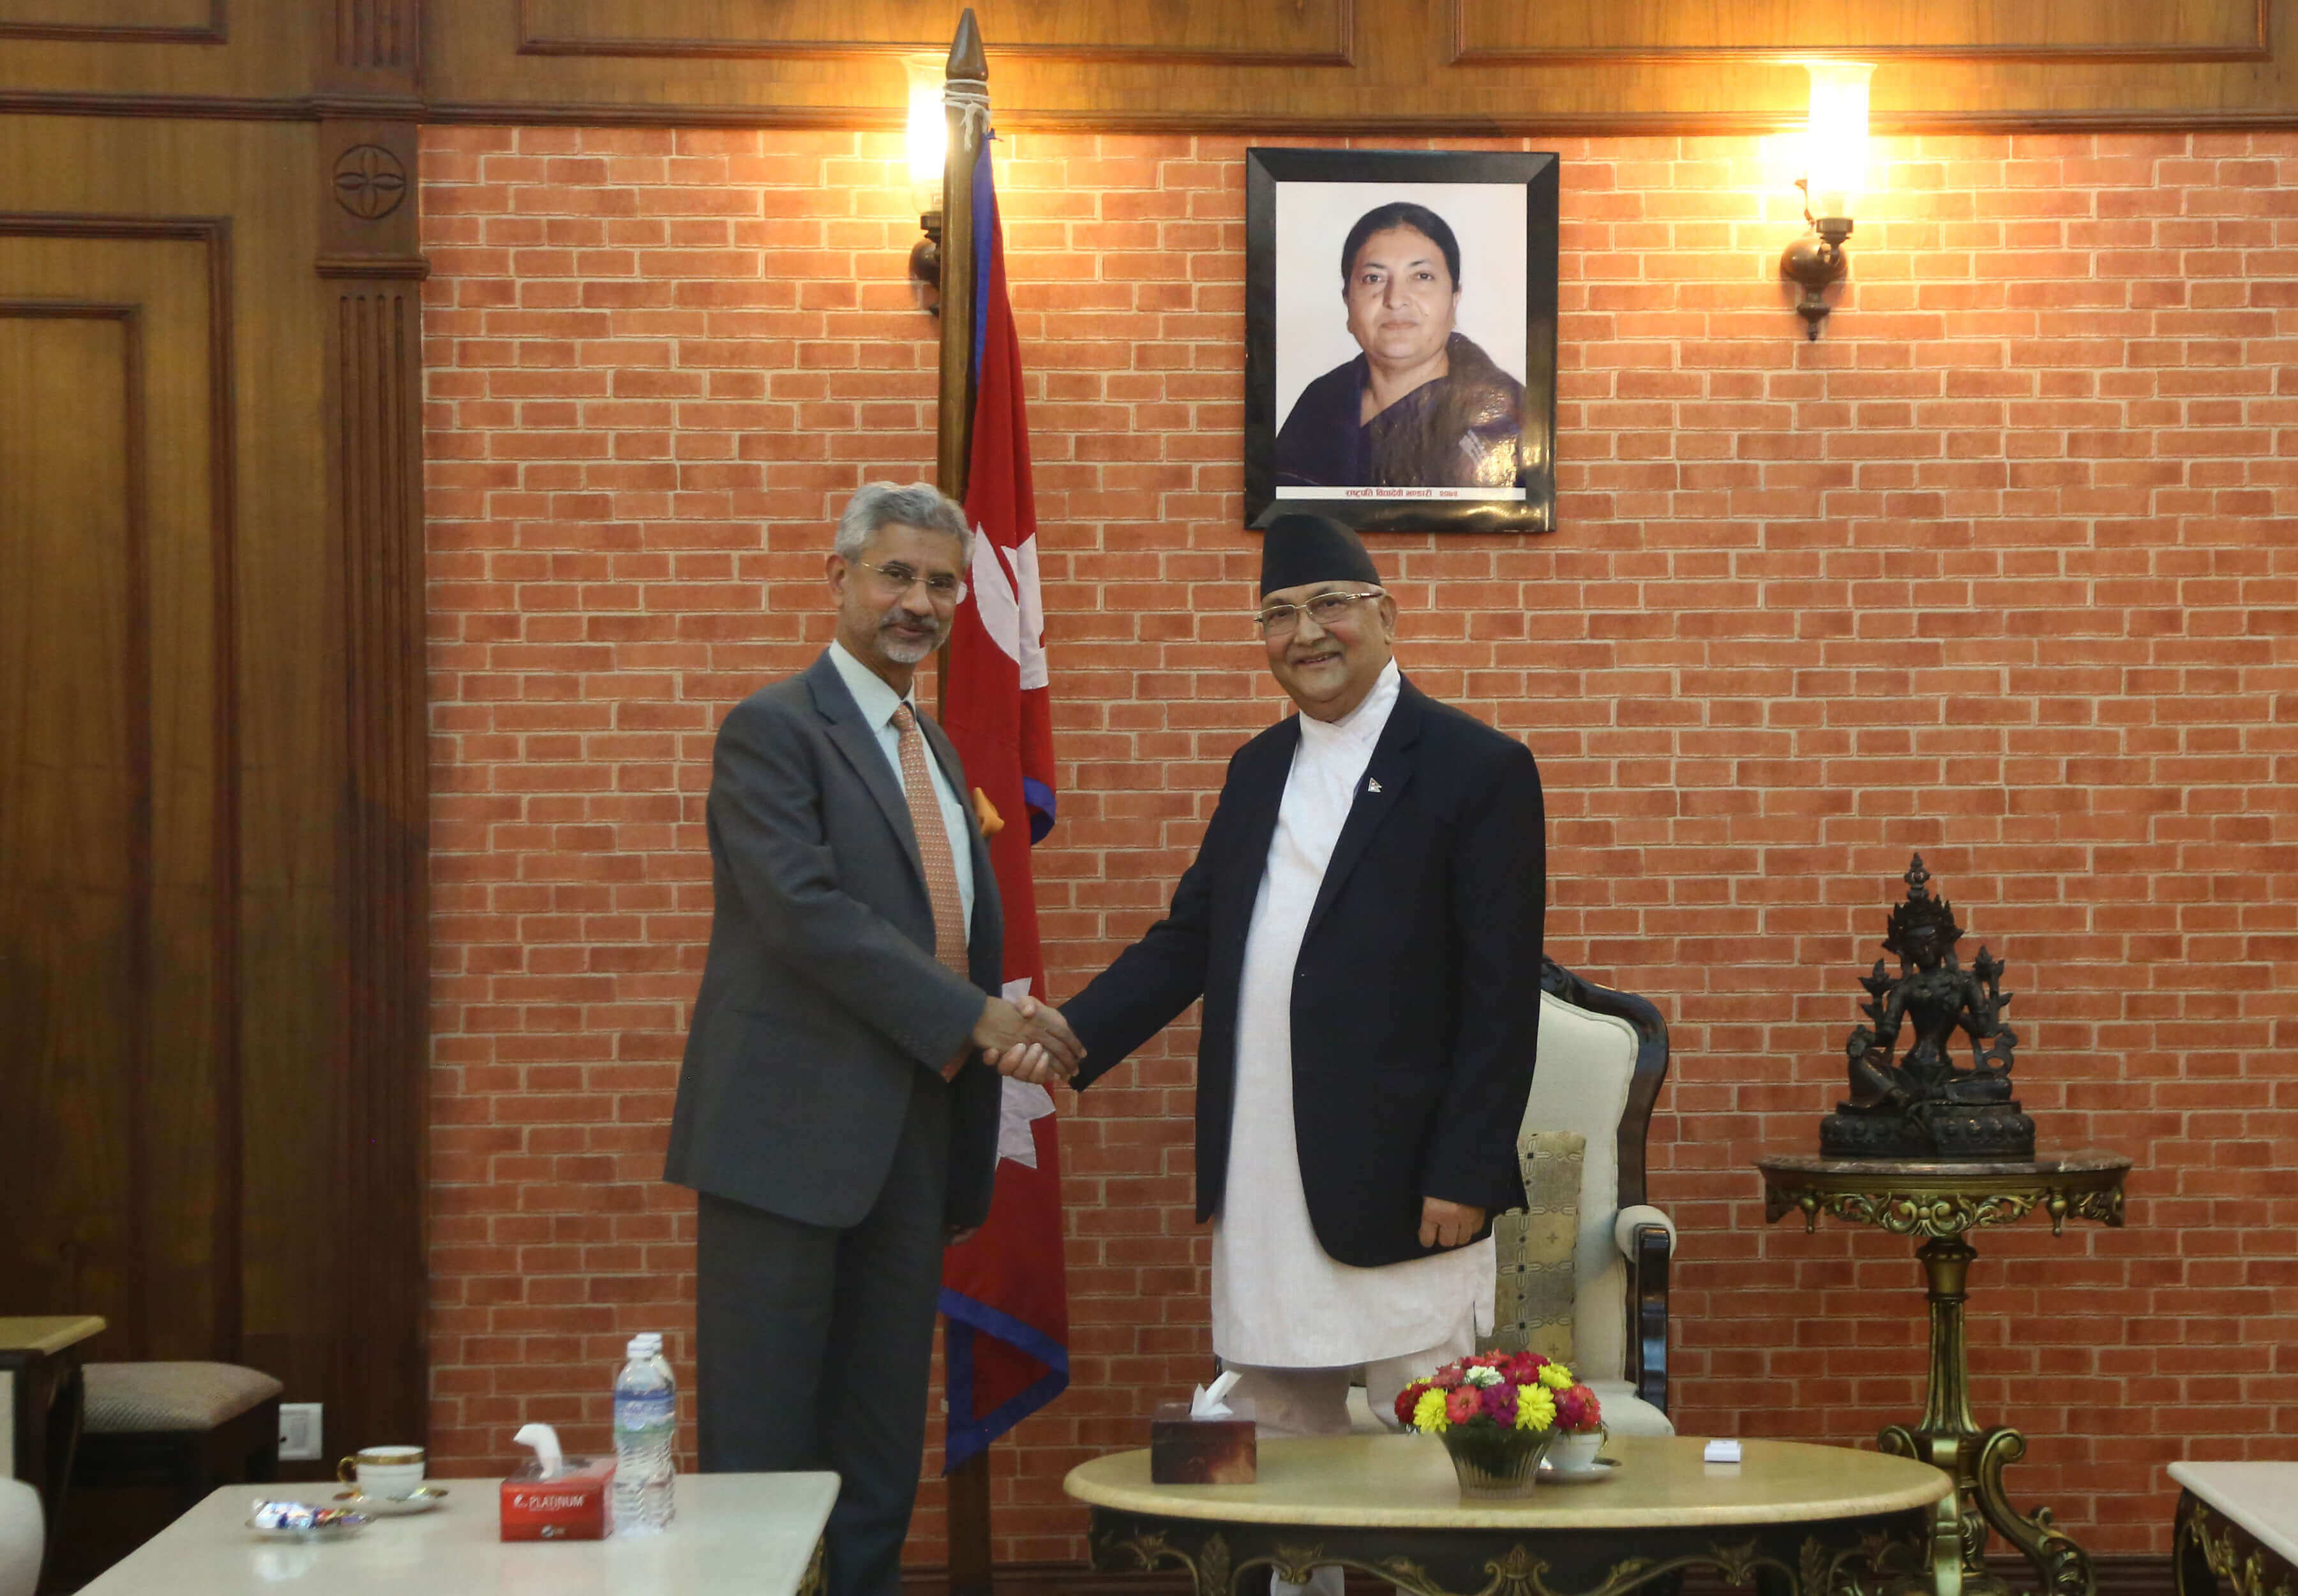 External Affairs Minister of India Subrahmanyam Jaishankar meets with prime Minister KP Oli in KAthmandu on Wednesday. Jaishankar is in Kathmandu for the 5th Joint Commission Meeting between India and Nepal.